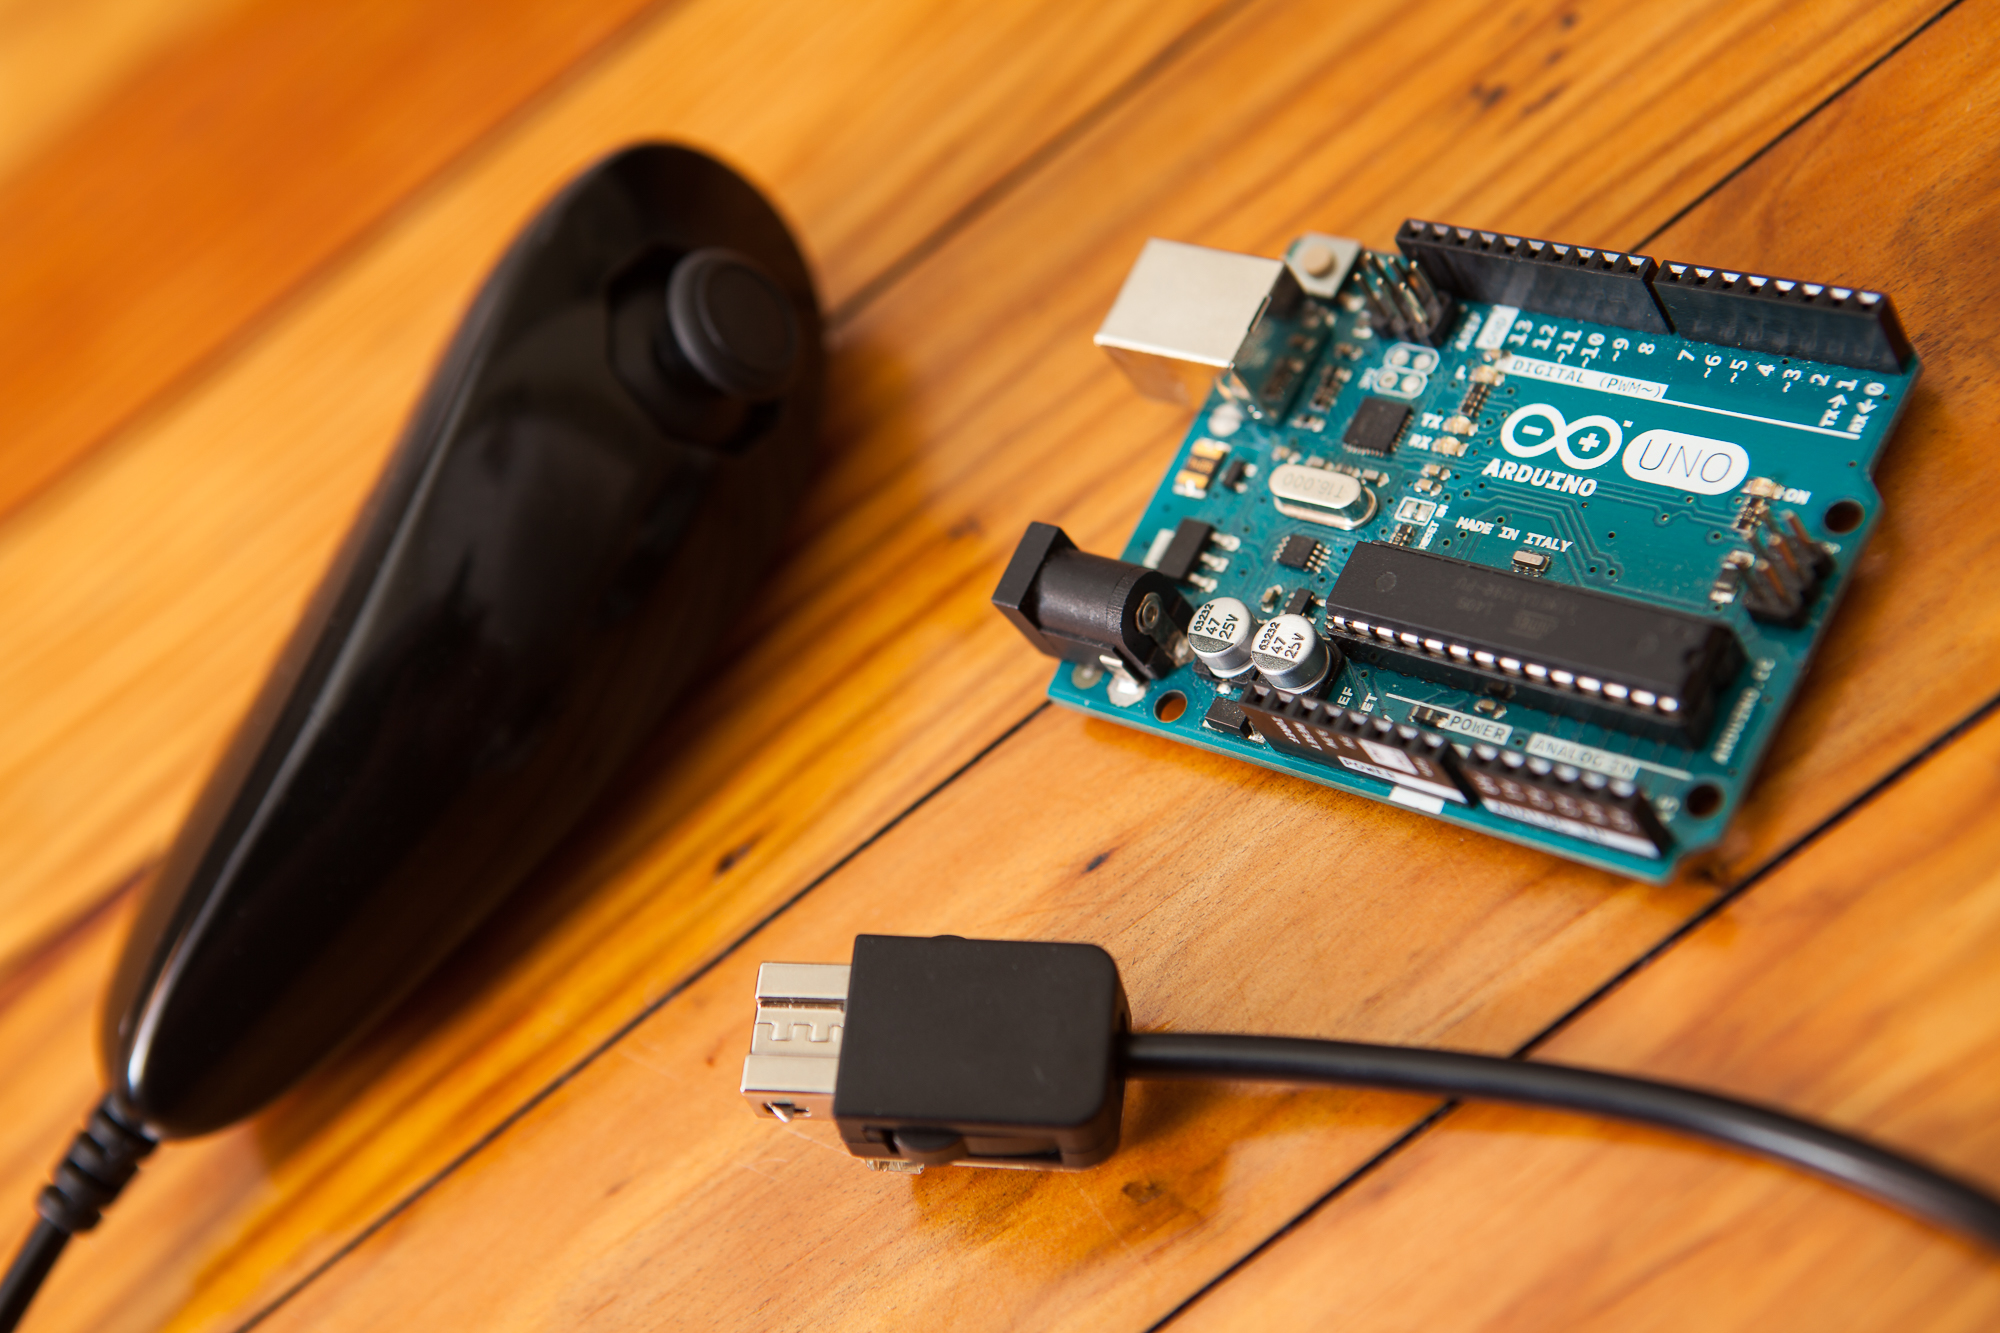 How to Use a Wii Nunchuk with an Arduino